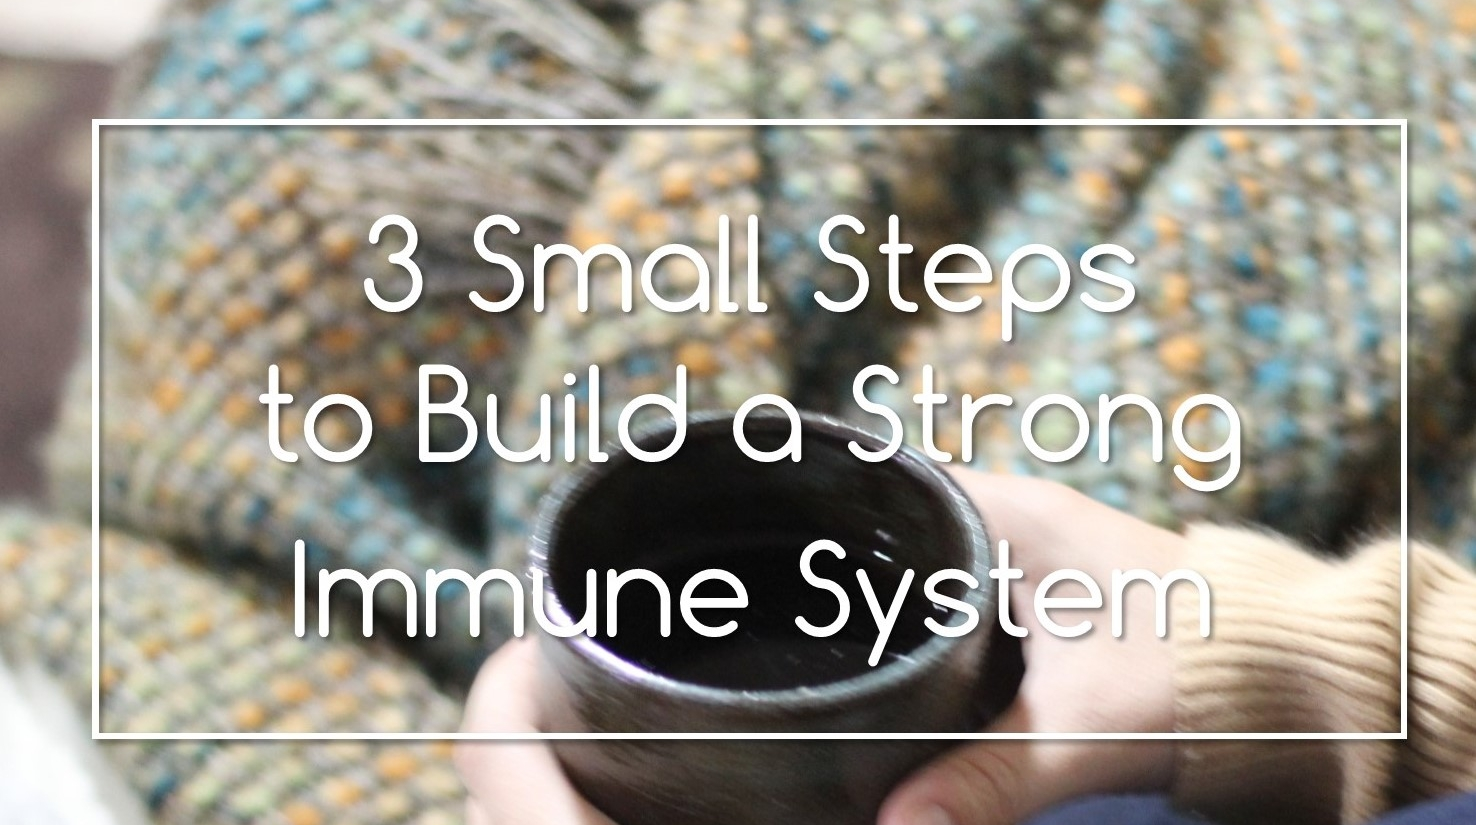 3 small steps to build a strong immune system.jpg